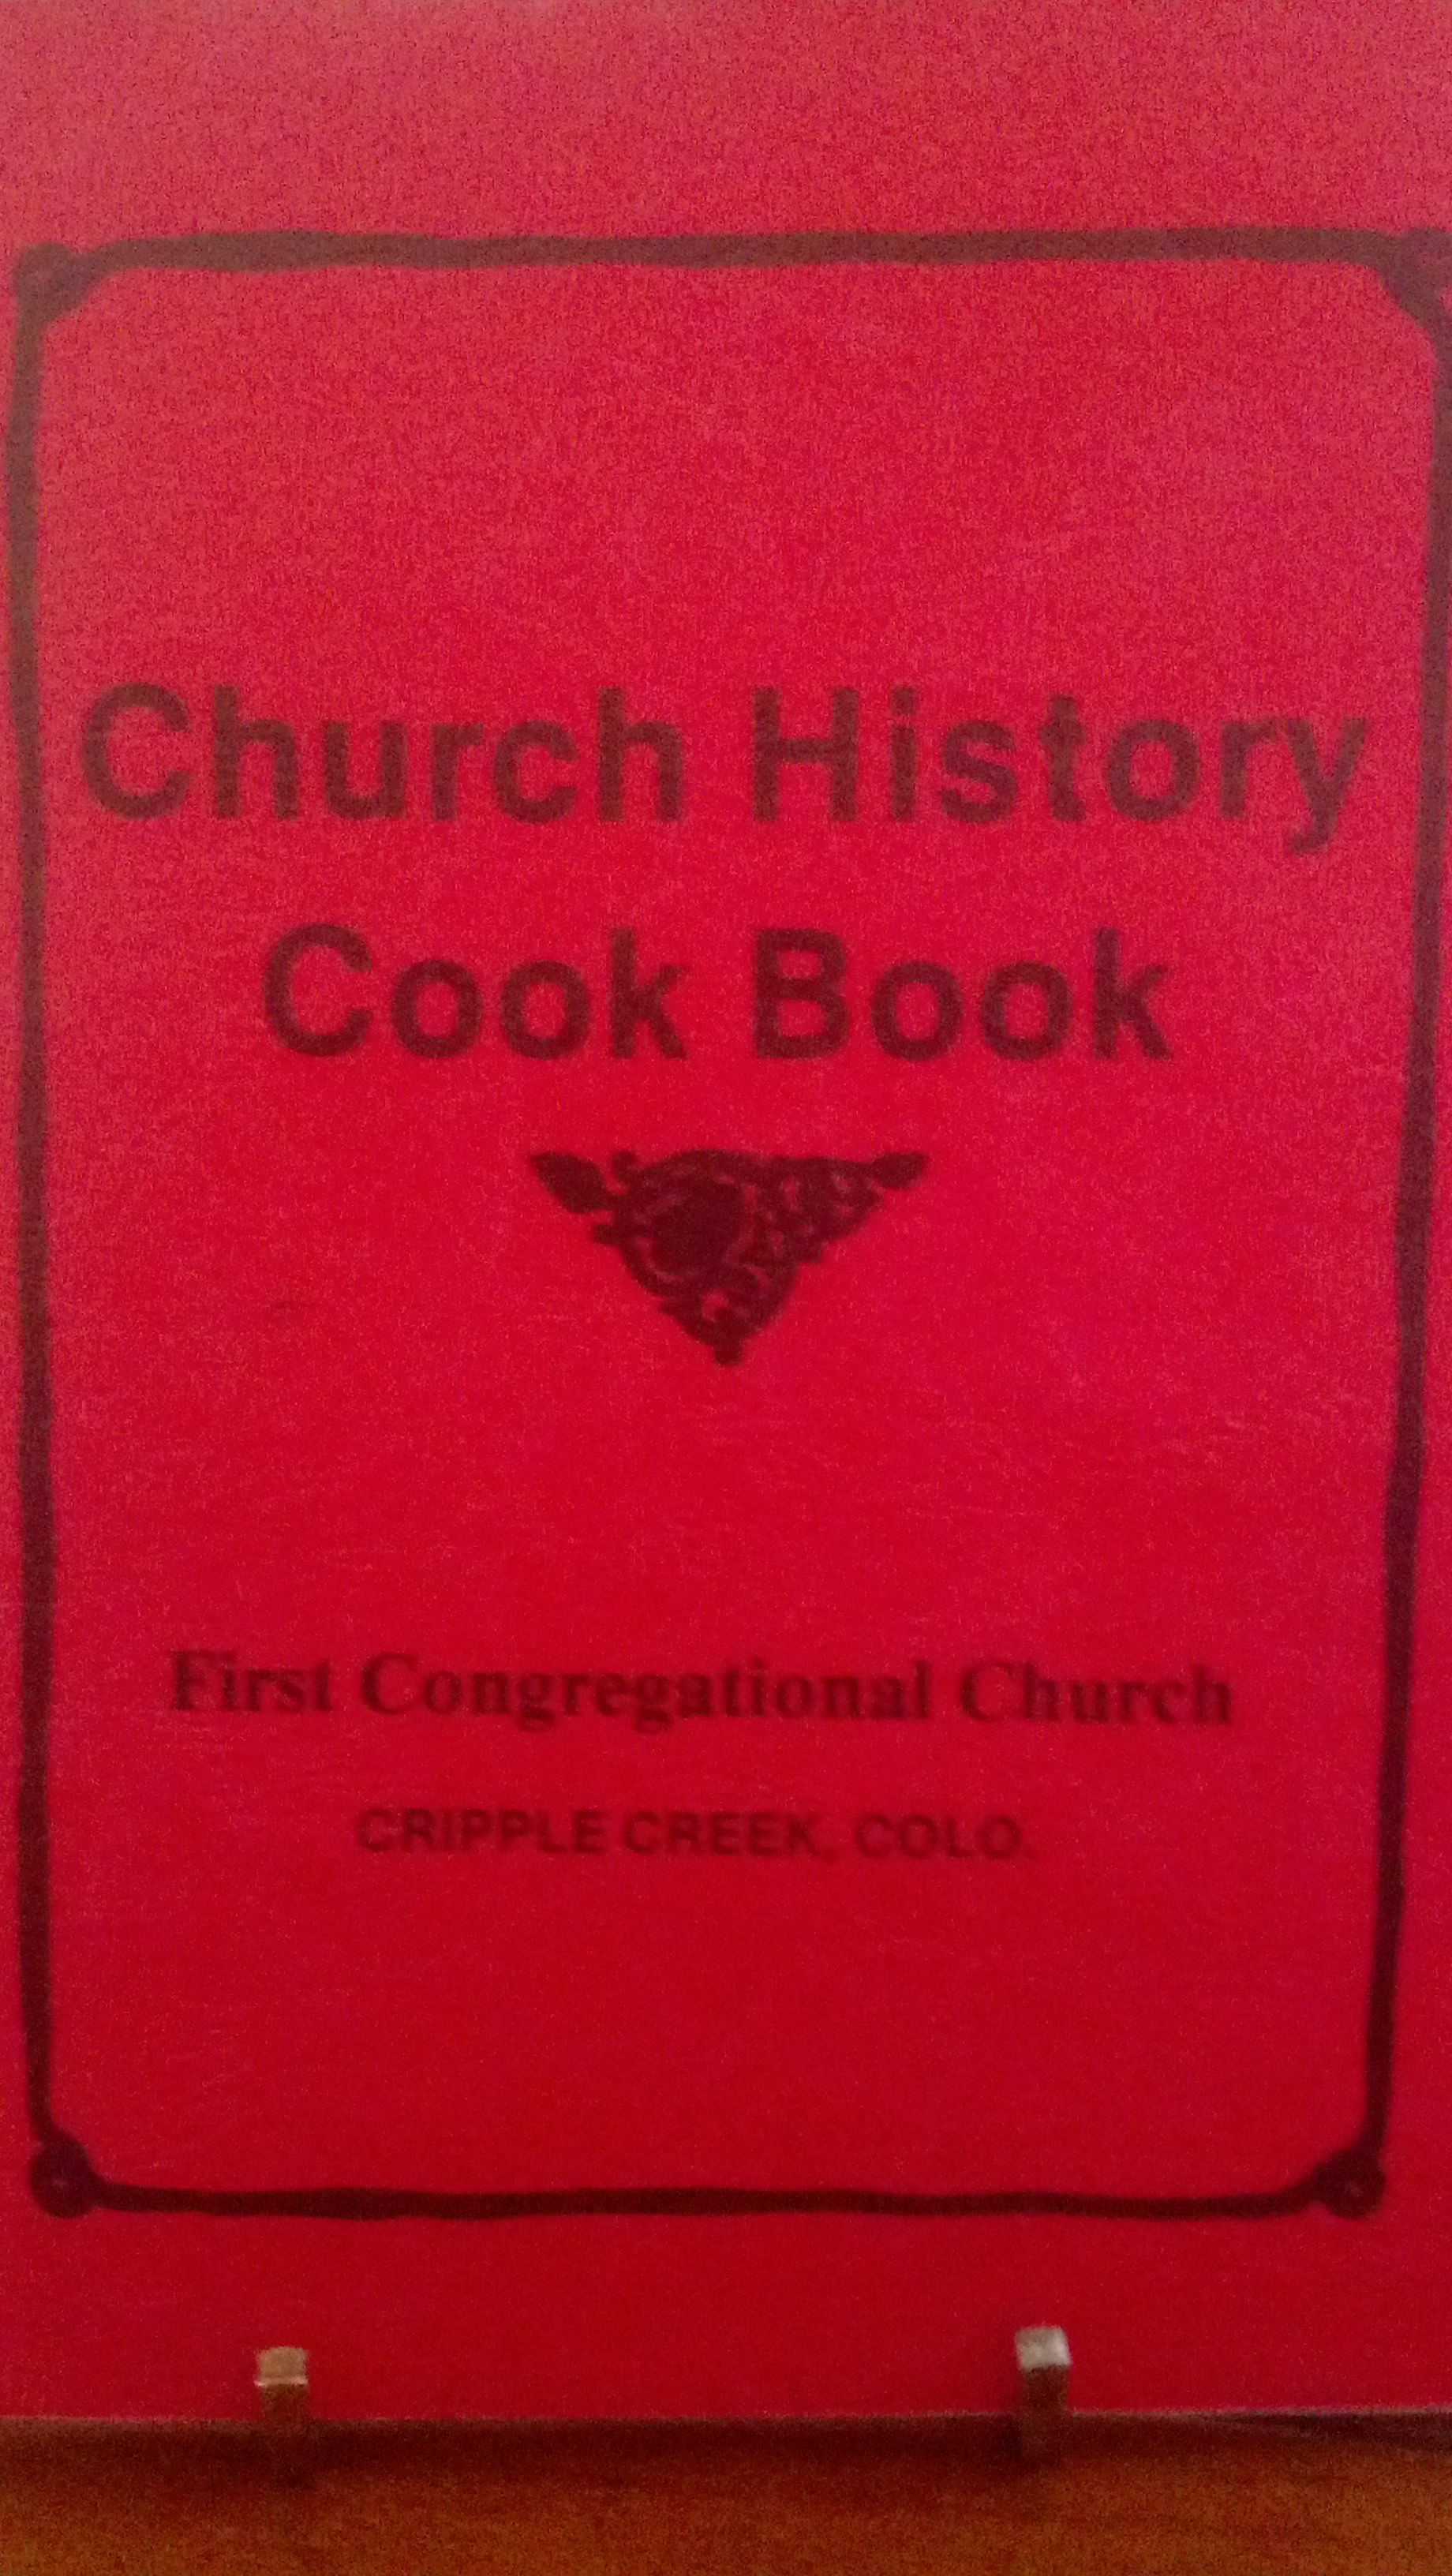 Cripple Creek Church History Cook Book